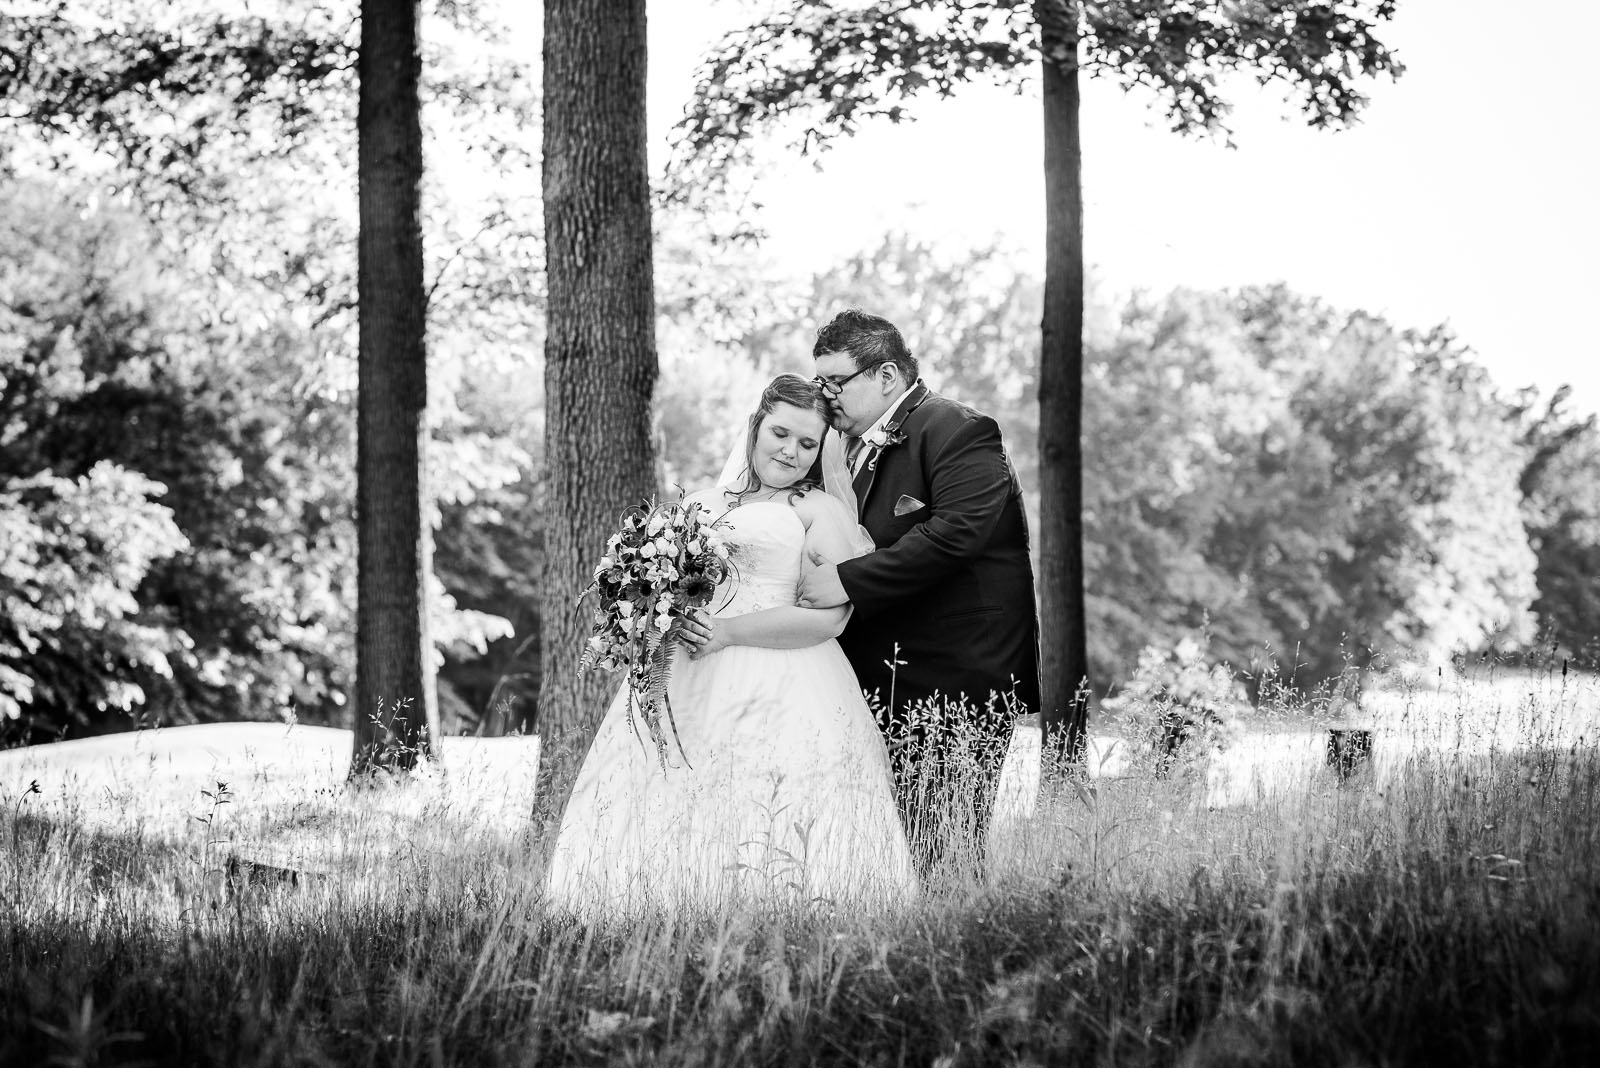 Eric_and_Christy_Photography_Blog_Shelby_Dony_Wedding-33